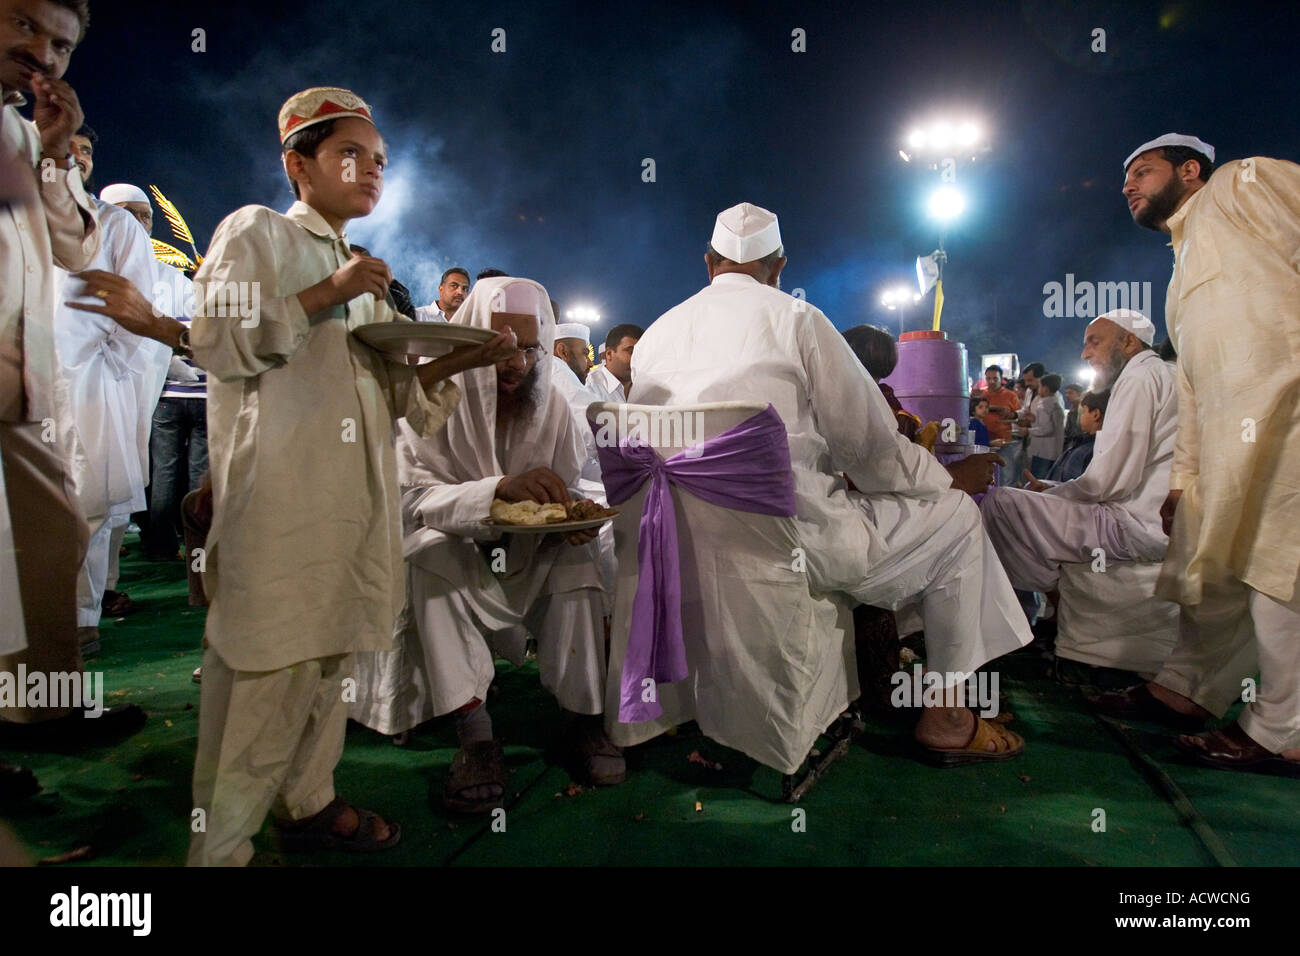 Wedding of the son of the imam of Delhi India with soldiers and 2000 guests - Stock Image